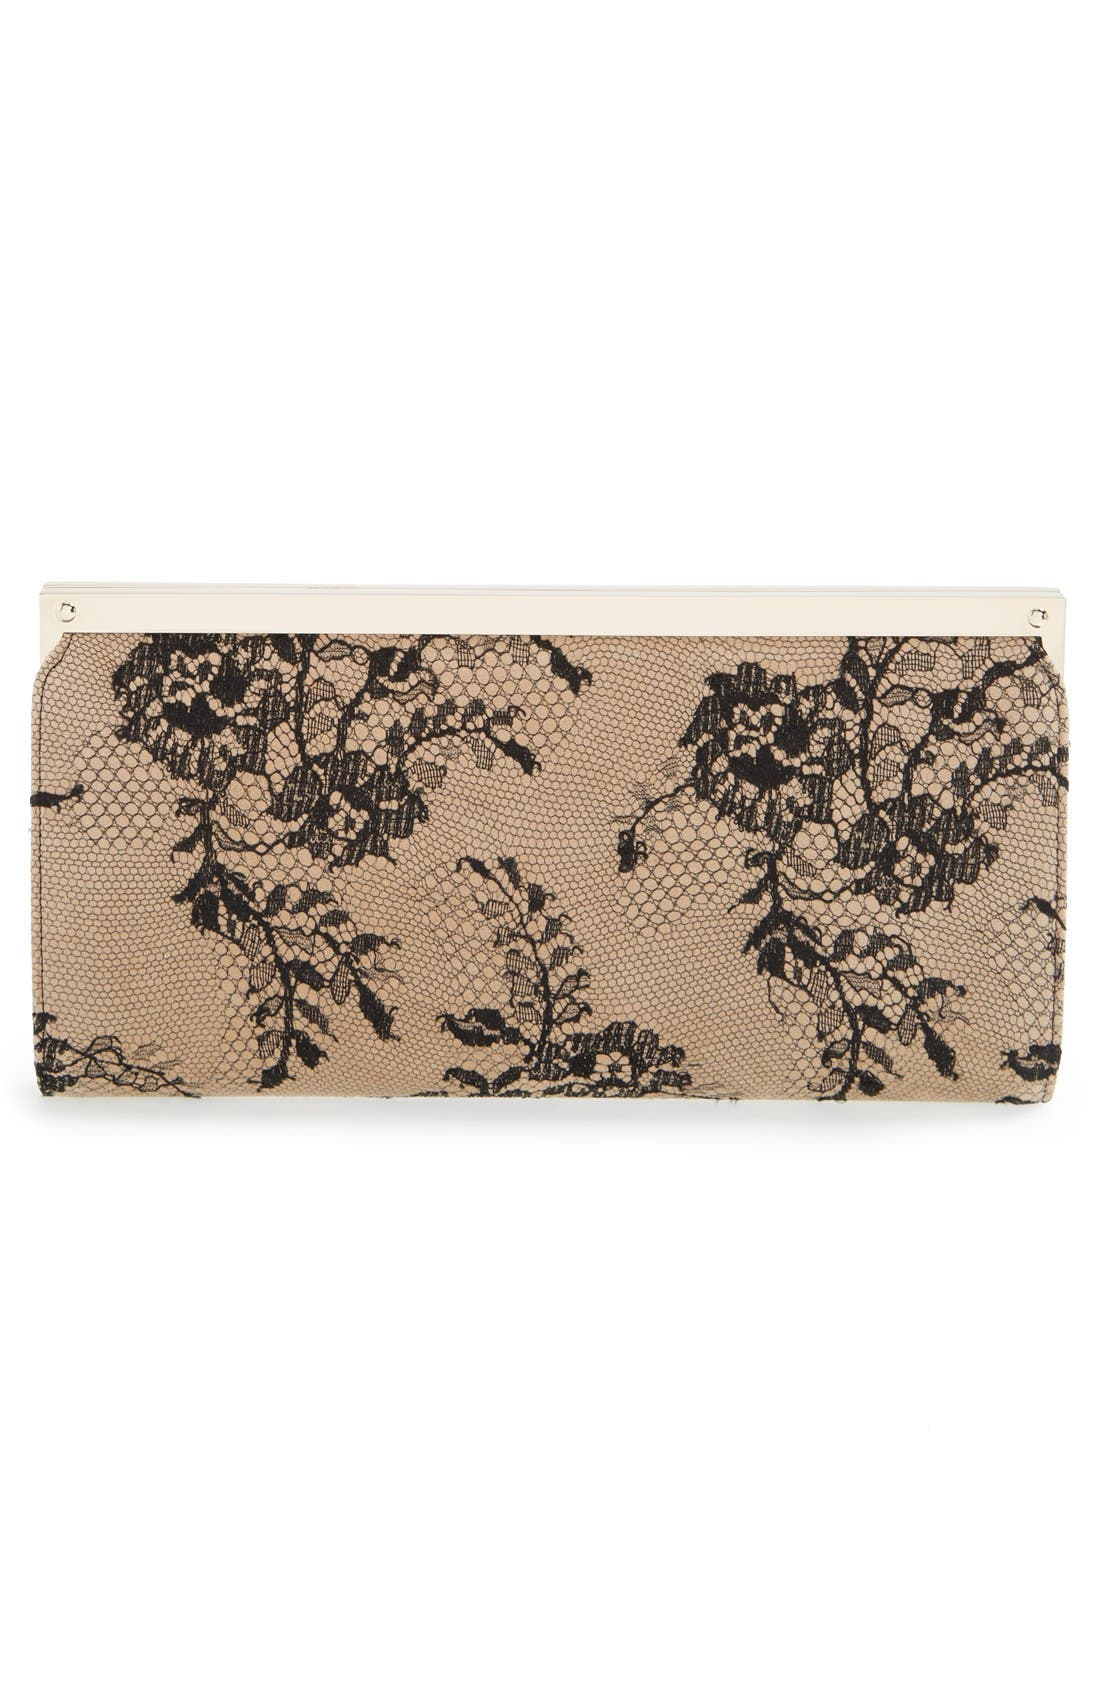 Camille Lace & Leather Clutch,                             Alternate thumbnail 3, color,                             Black